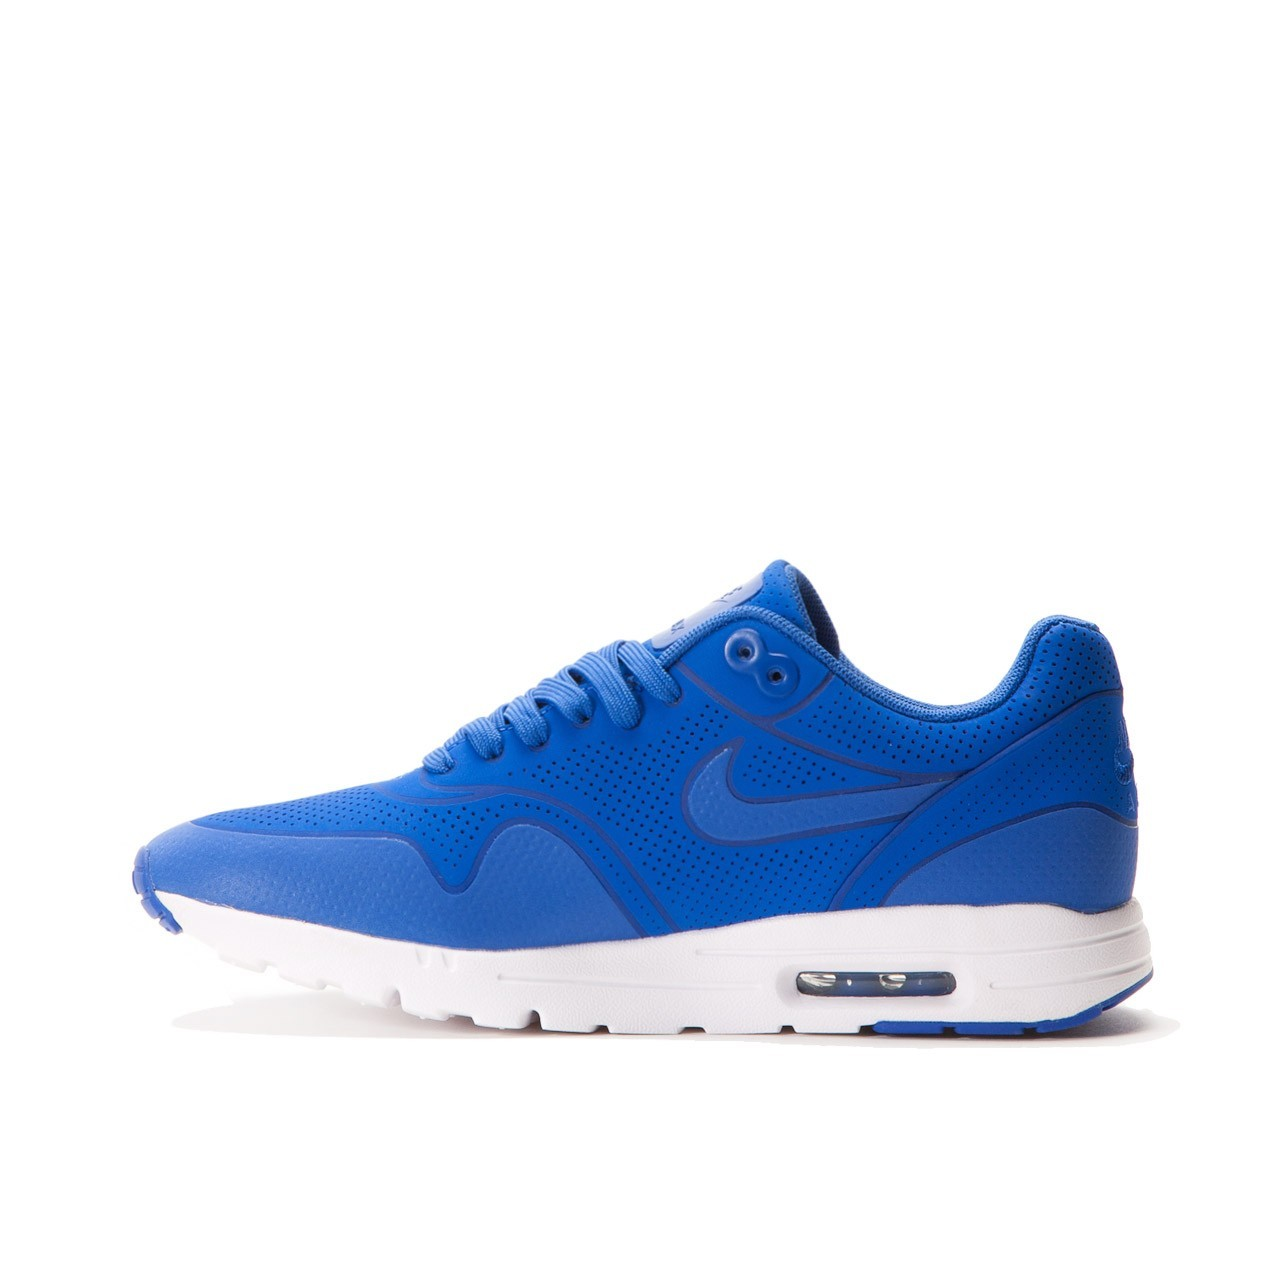 cheap nike air max 1 ultra moire game royal blue white men 39 s shoe for sale discount shop online. Black Bedroom Furniture Sets. Home Design Ideas